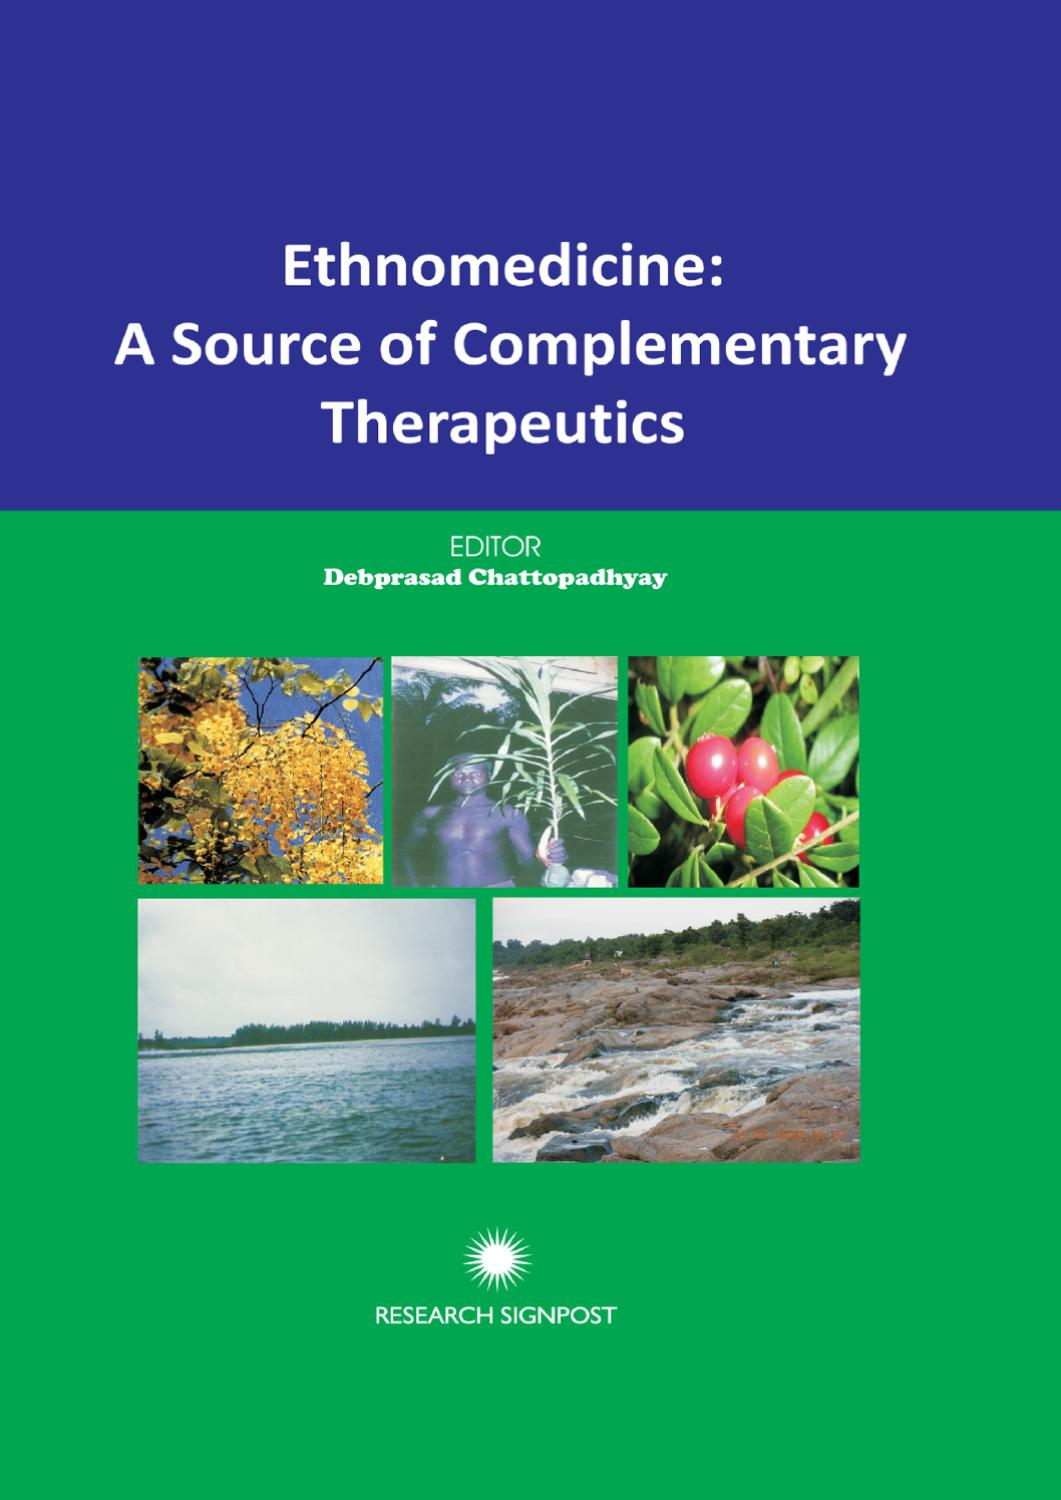 Ethnomedicine: A Source of Complementary Therapeutics by